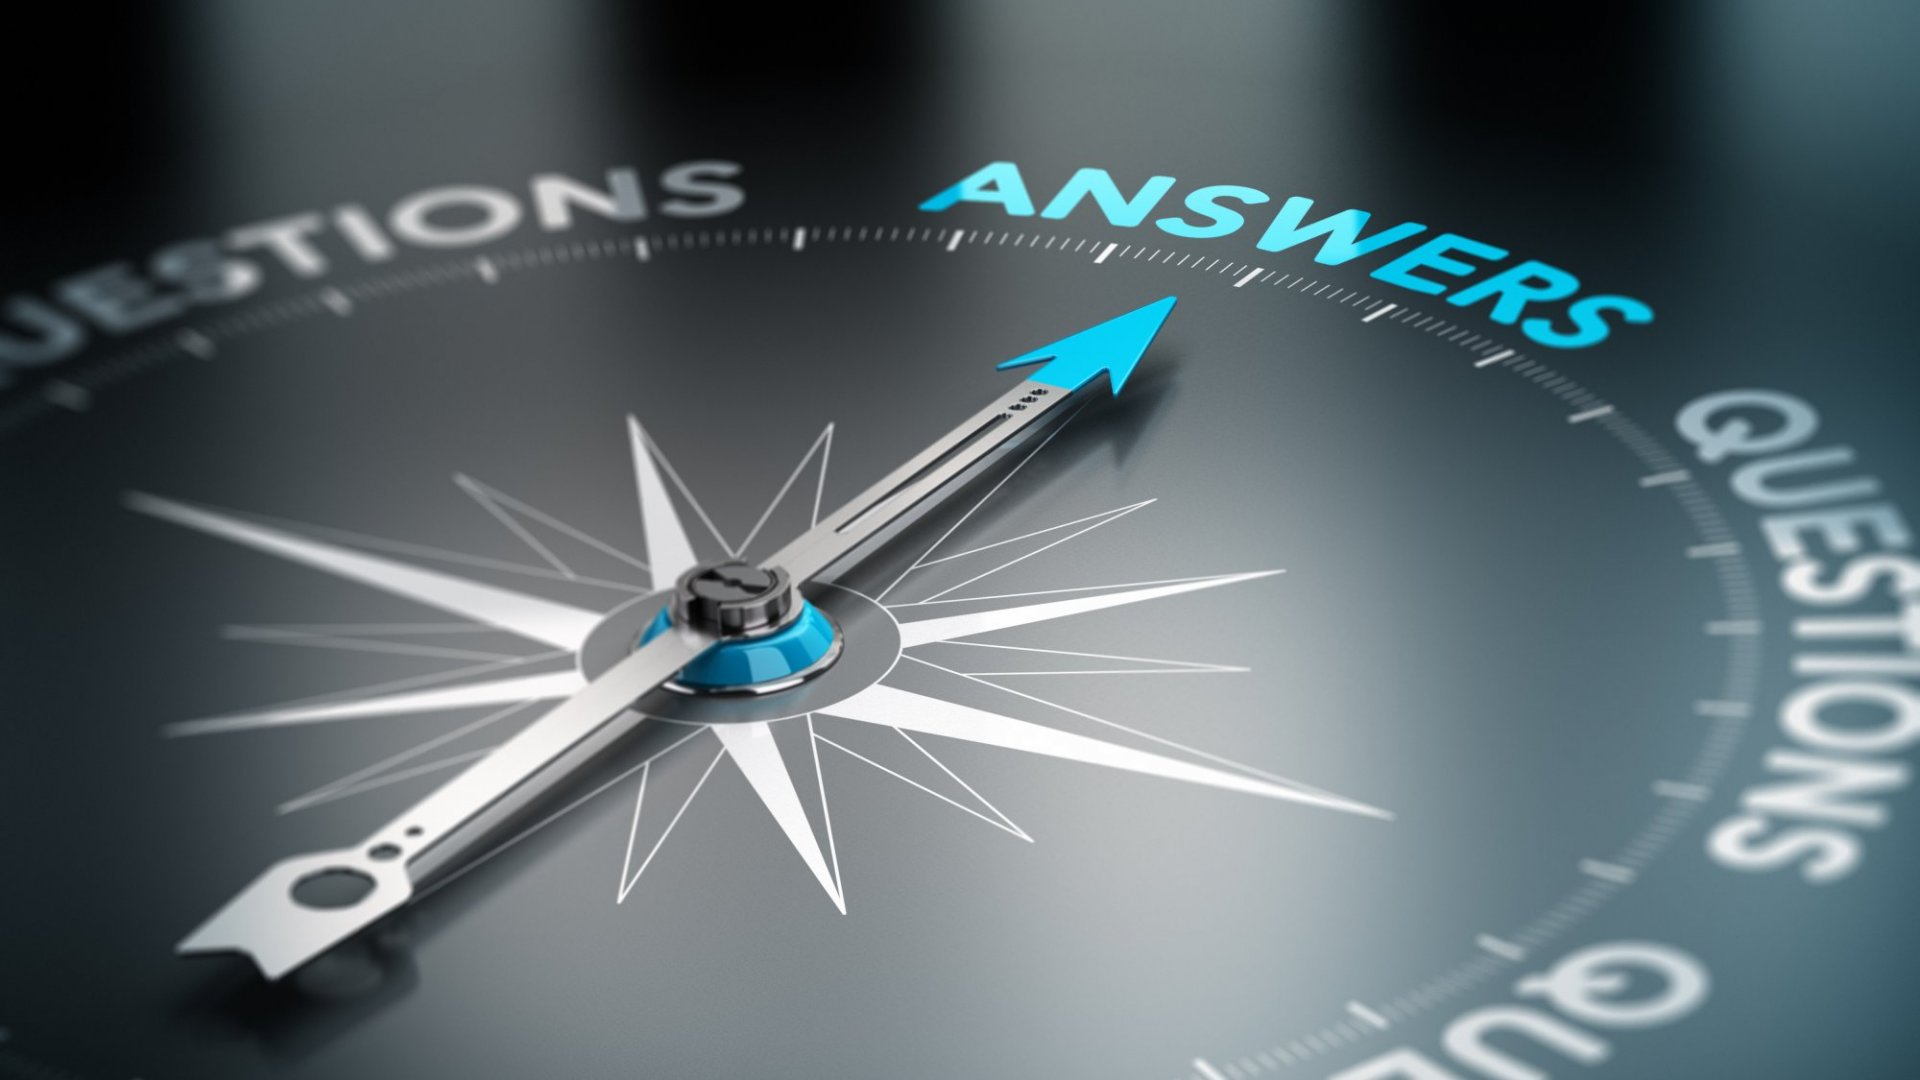 4 Questions to Gain Alignment